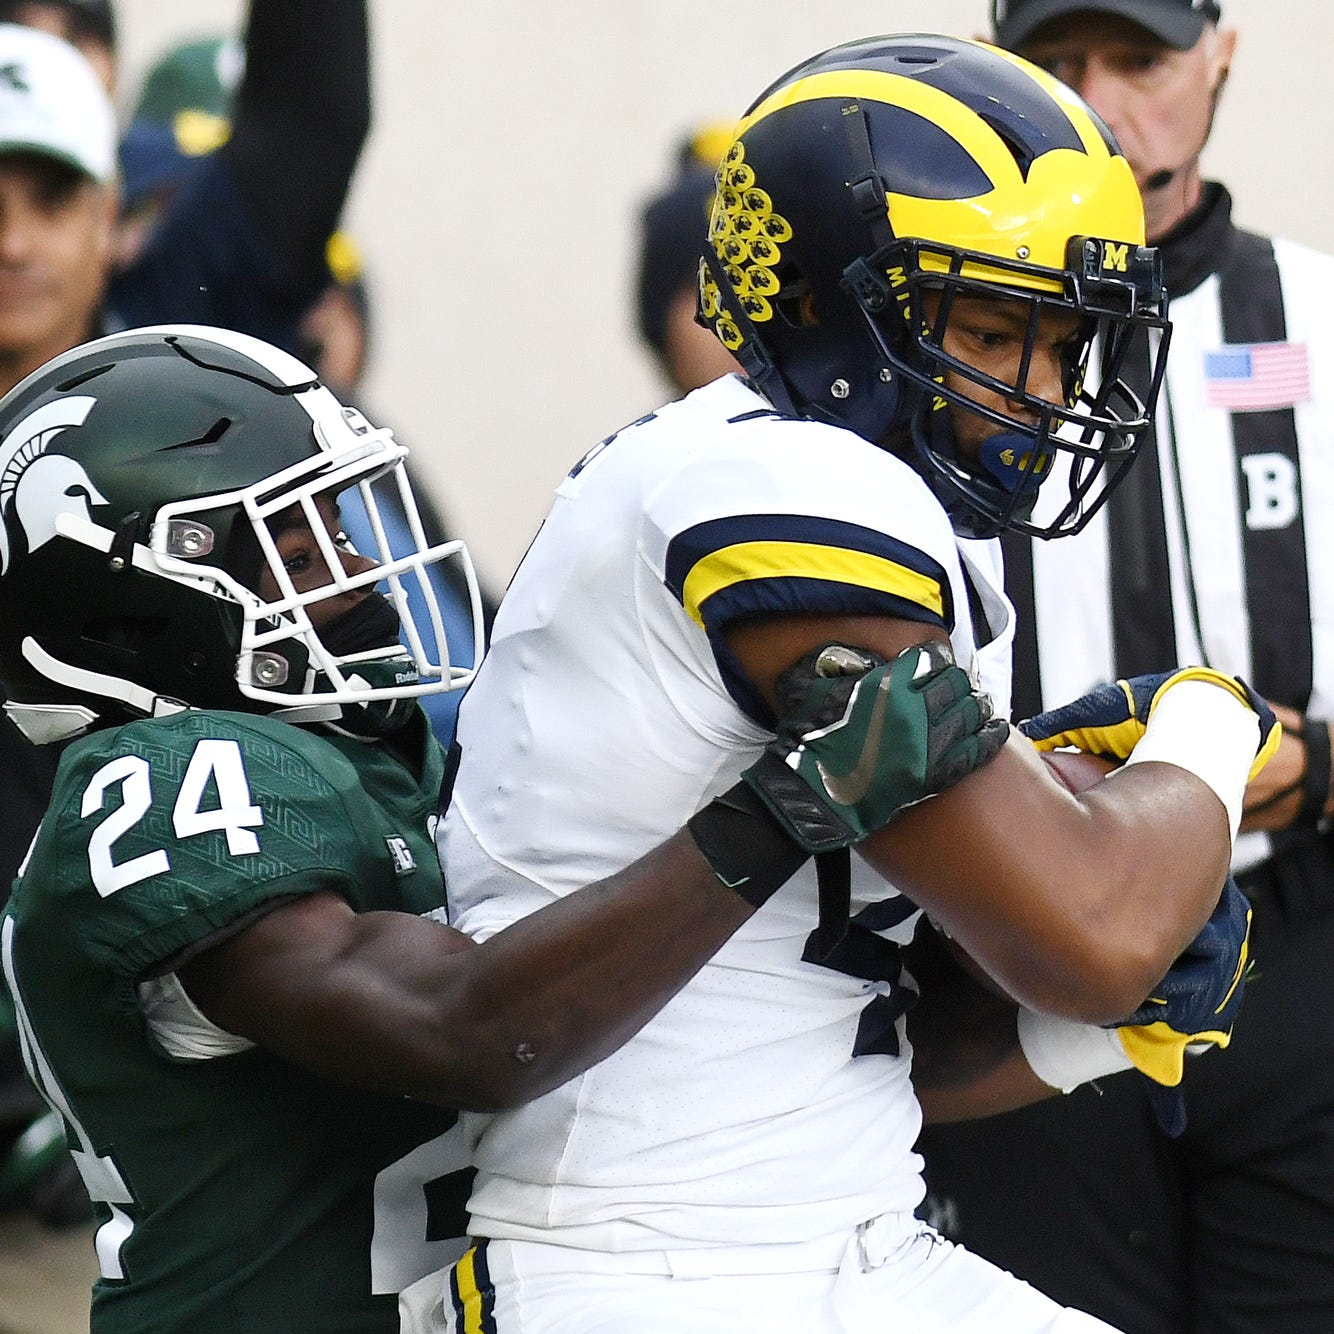 Michigan State offense takes brunt of online criticism in loss to Michigan